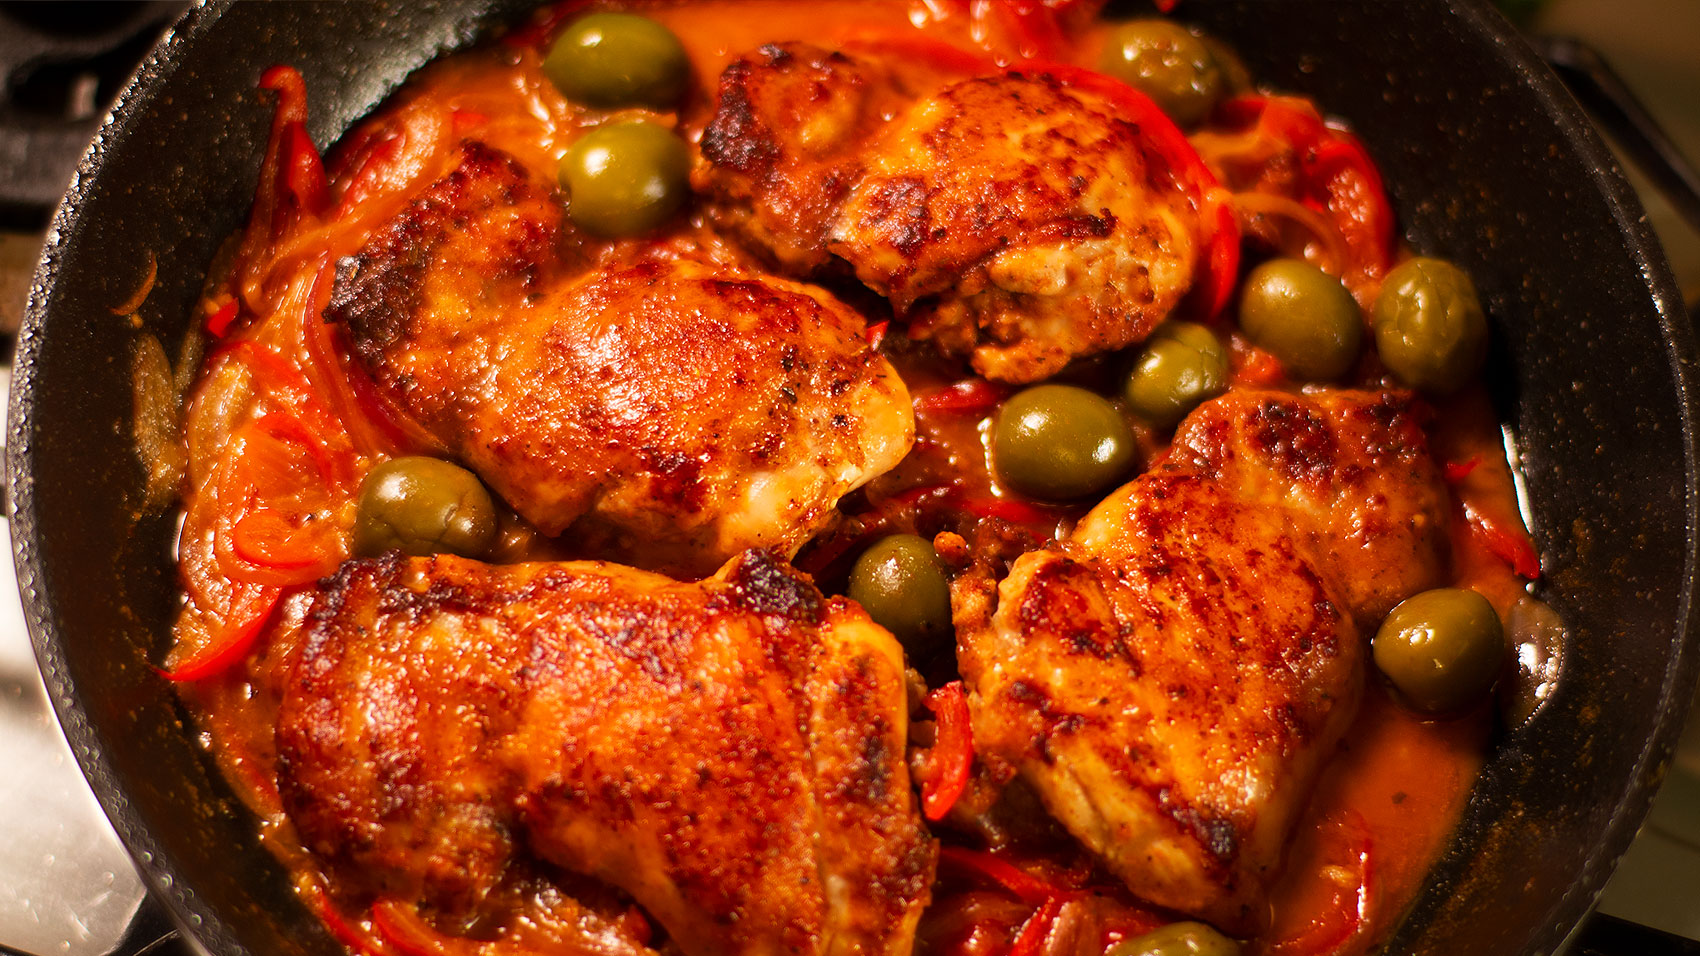 Spanish Style Chicken Easy Meals With Video Recipes By Chef Joel Mielle Recipe30